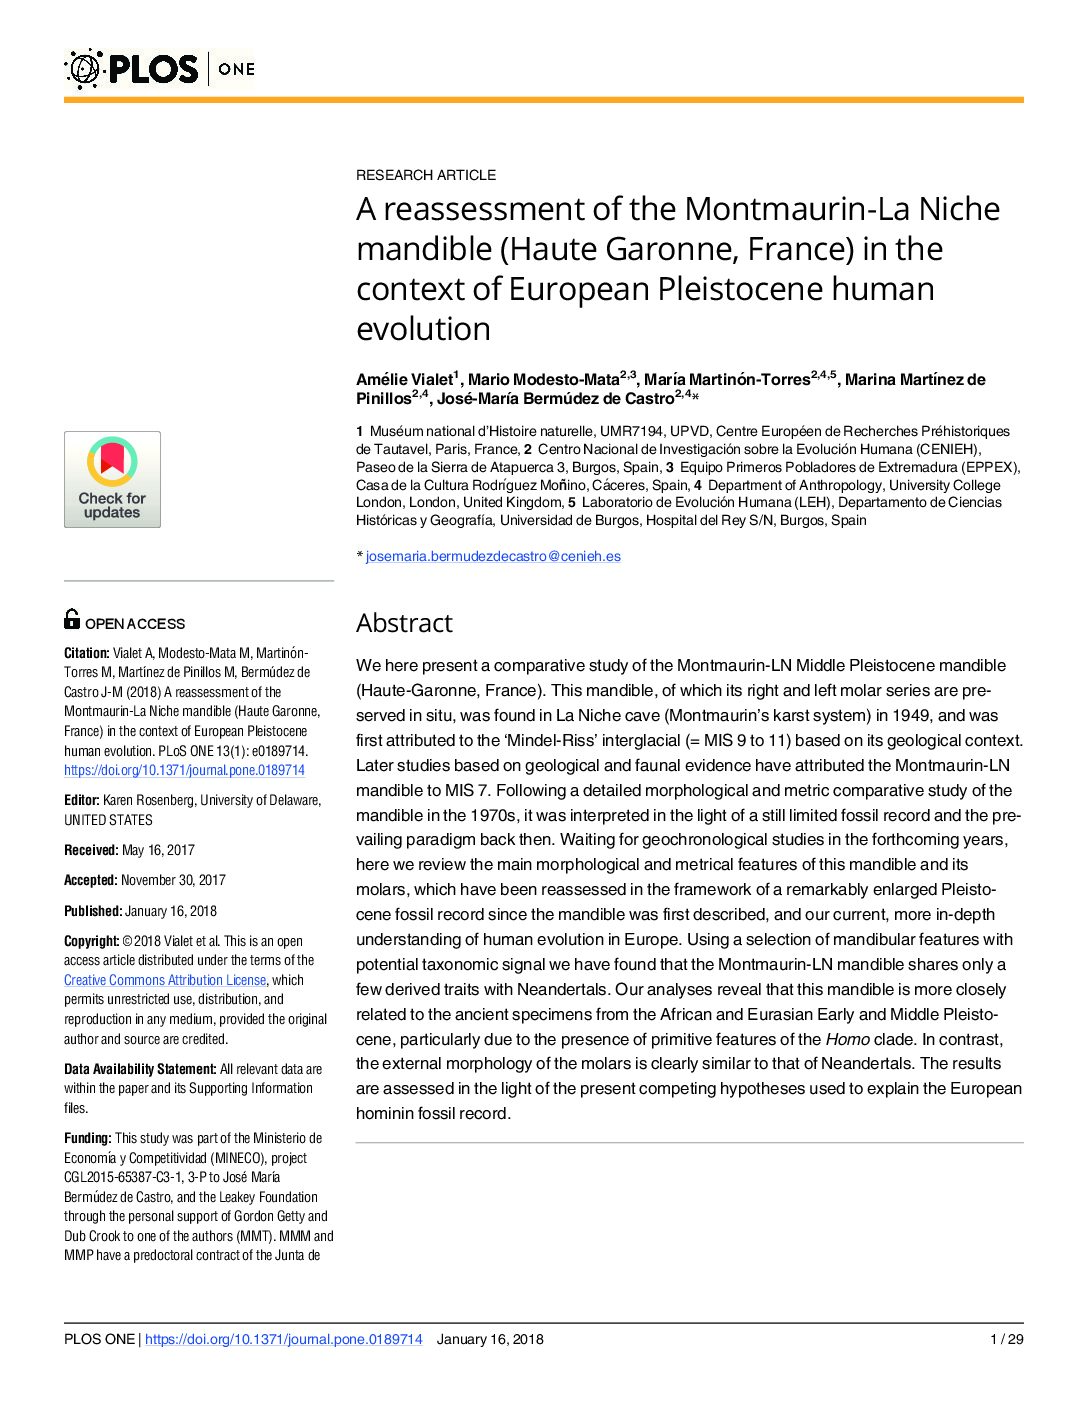 A reassessment of the Montmaurin-La Niche mandible (Haute Garonne, France) in the context of European Pleistocene human evolution